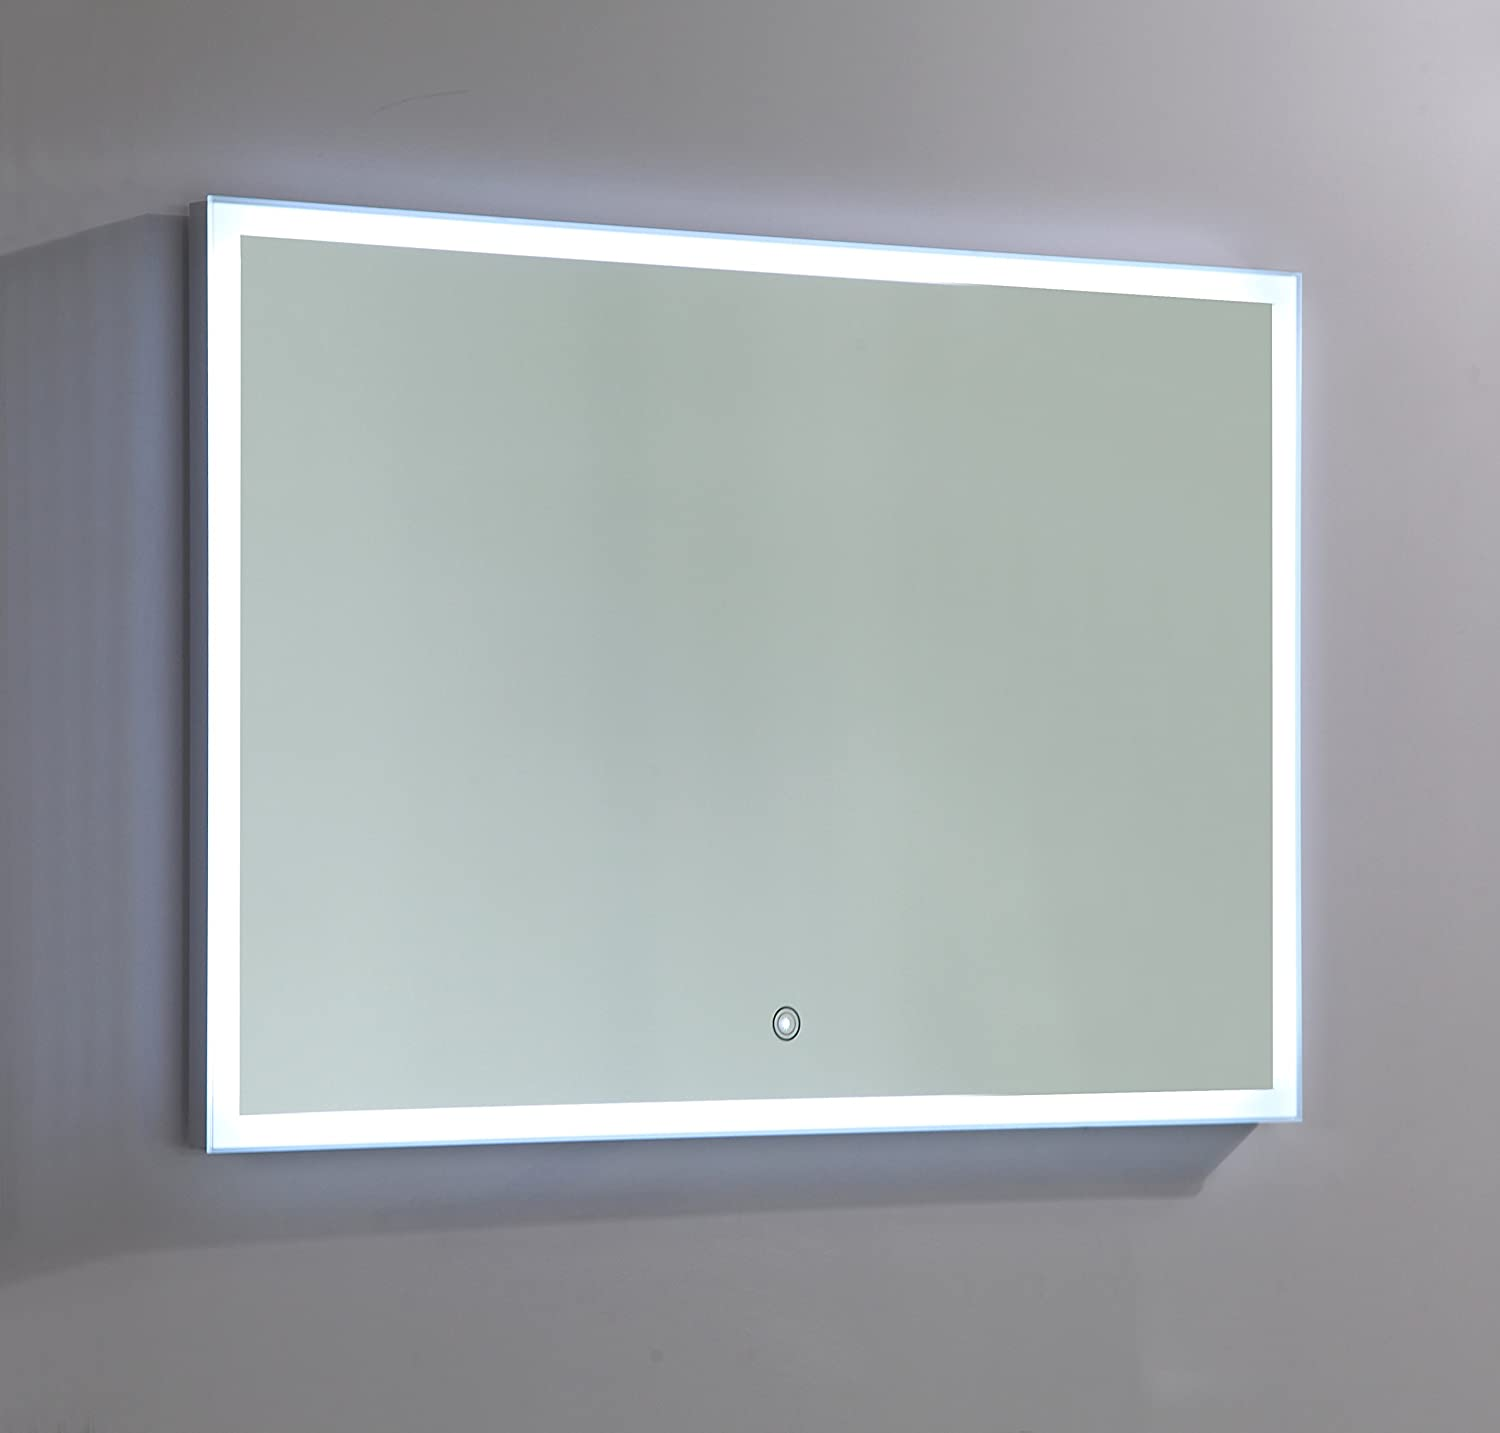 Amazon.com: Vanity Art LED lighted vanity Bathroom Mirror with white ...